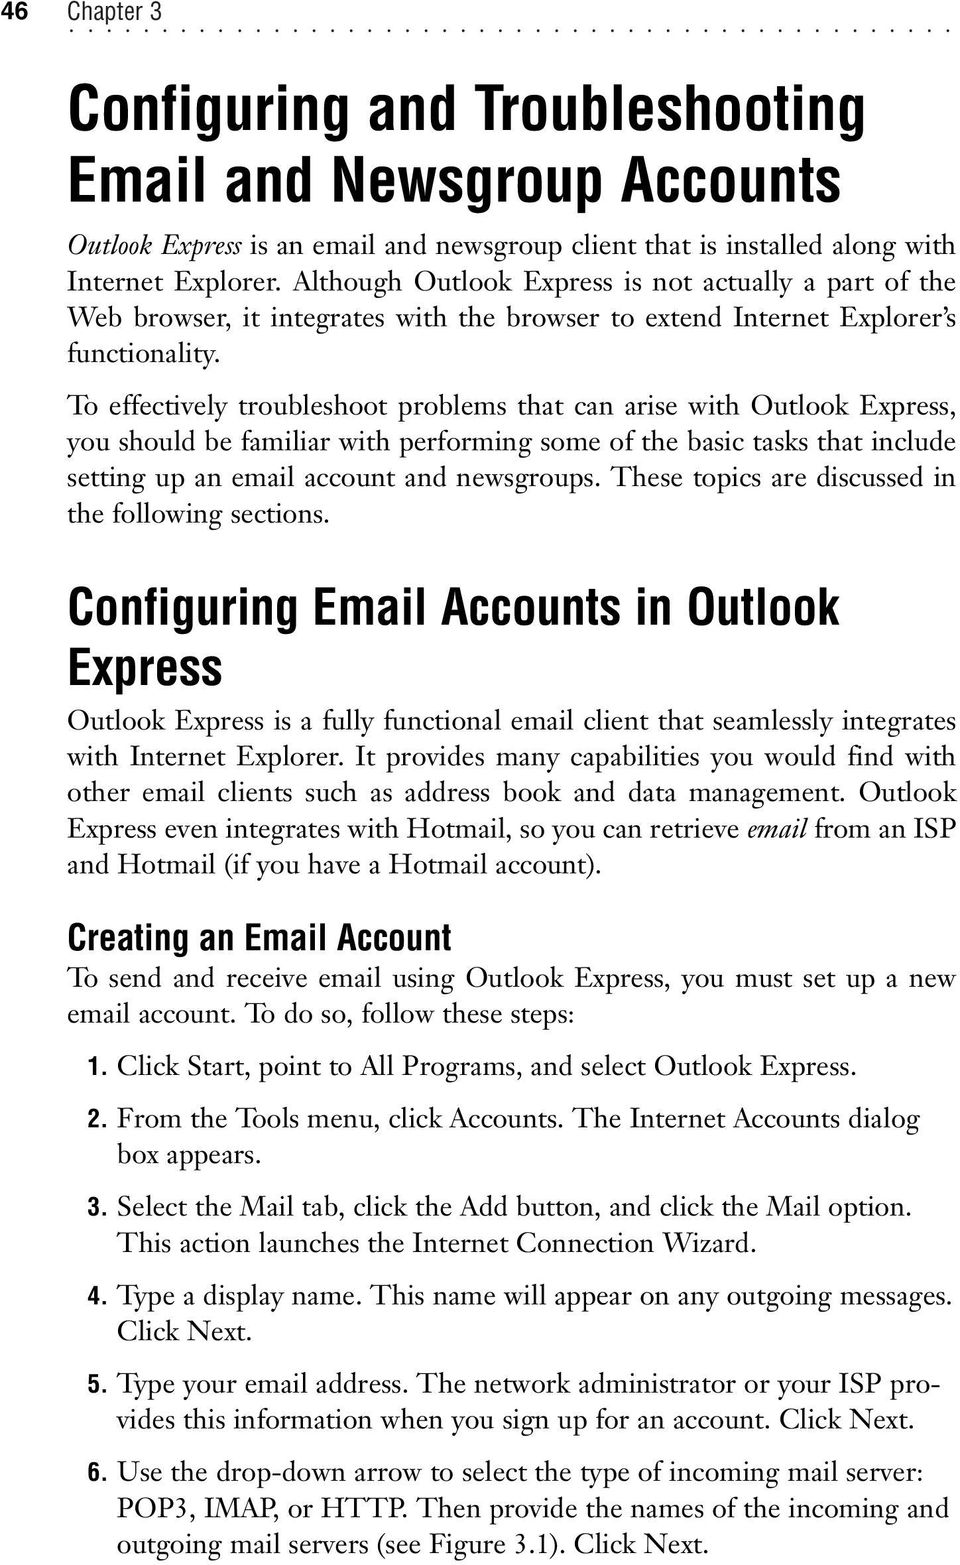 To effectively troubleshoot problems that can arise with Outlook Express, you should be familiar with performing some of the basic tasks that include setting up an email account and newsgroups.